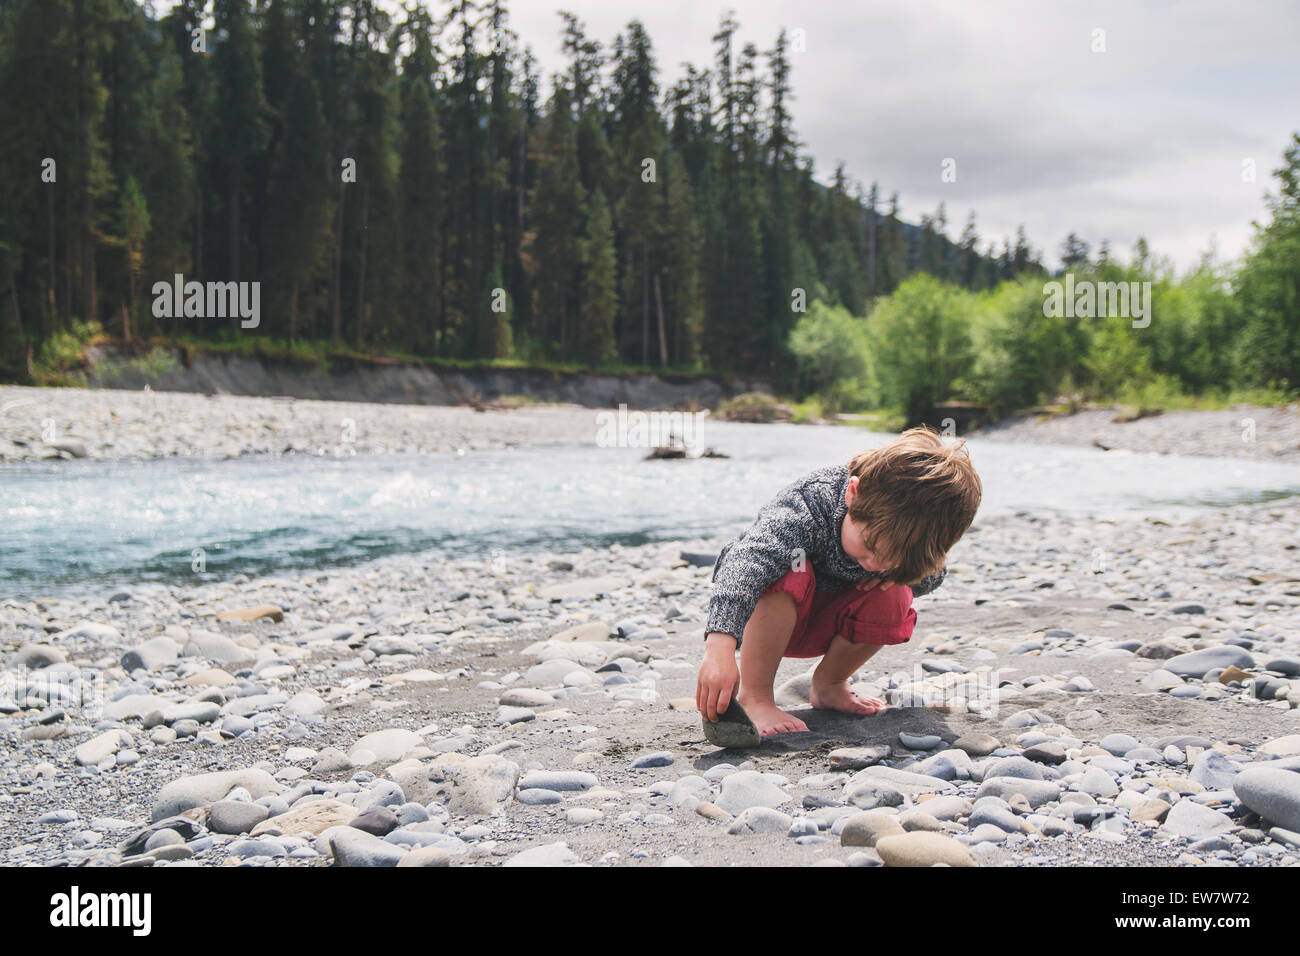 Boy looking under a rock in a river bed Stock Photo